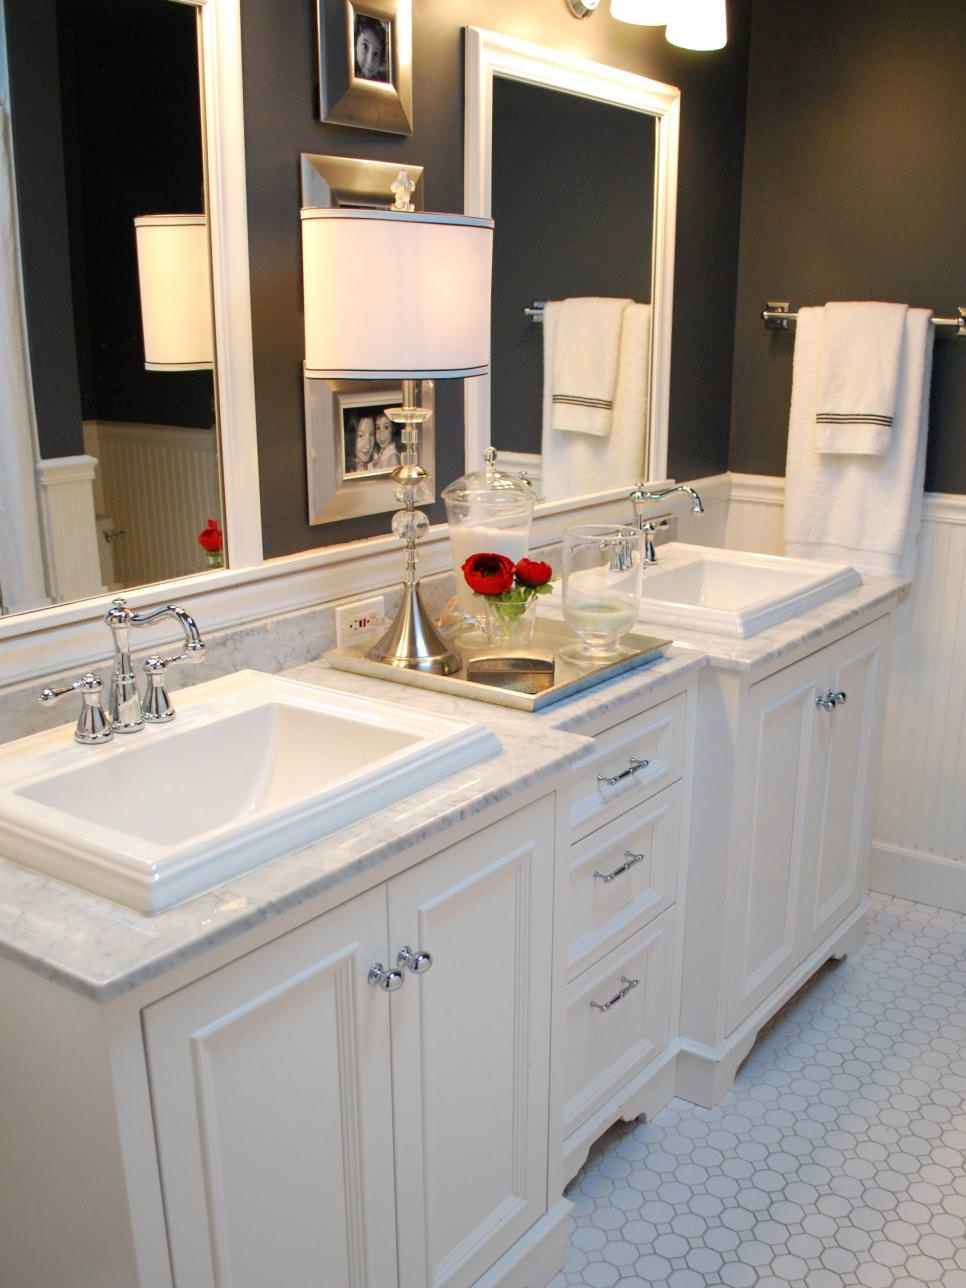 24 double bathroom vanity ideas bathroom designs for Bathroom vanities design ideas